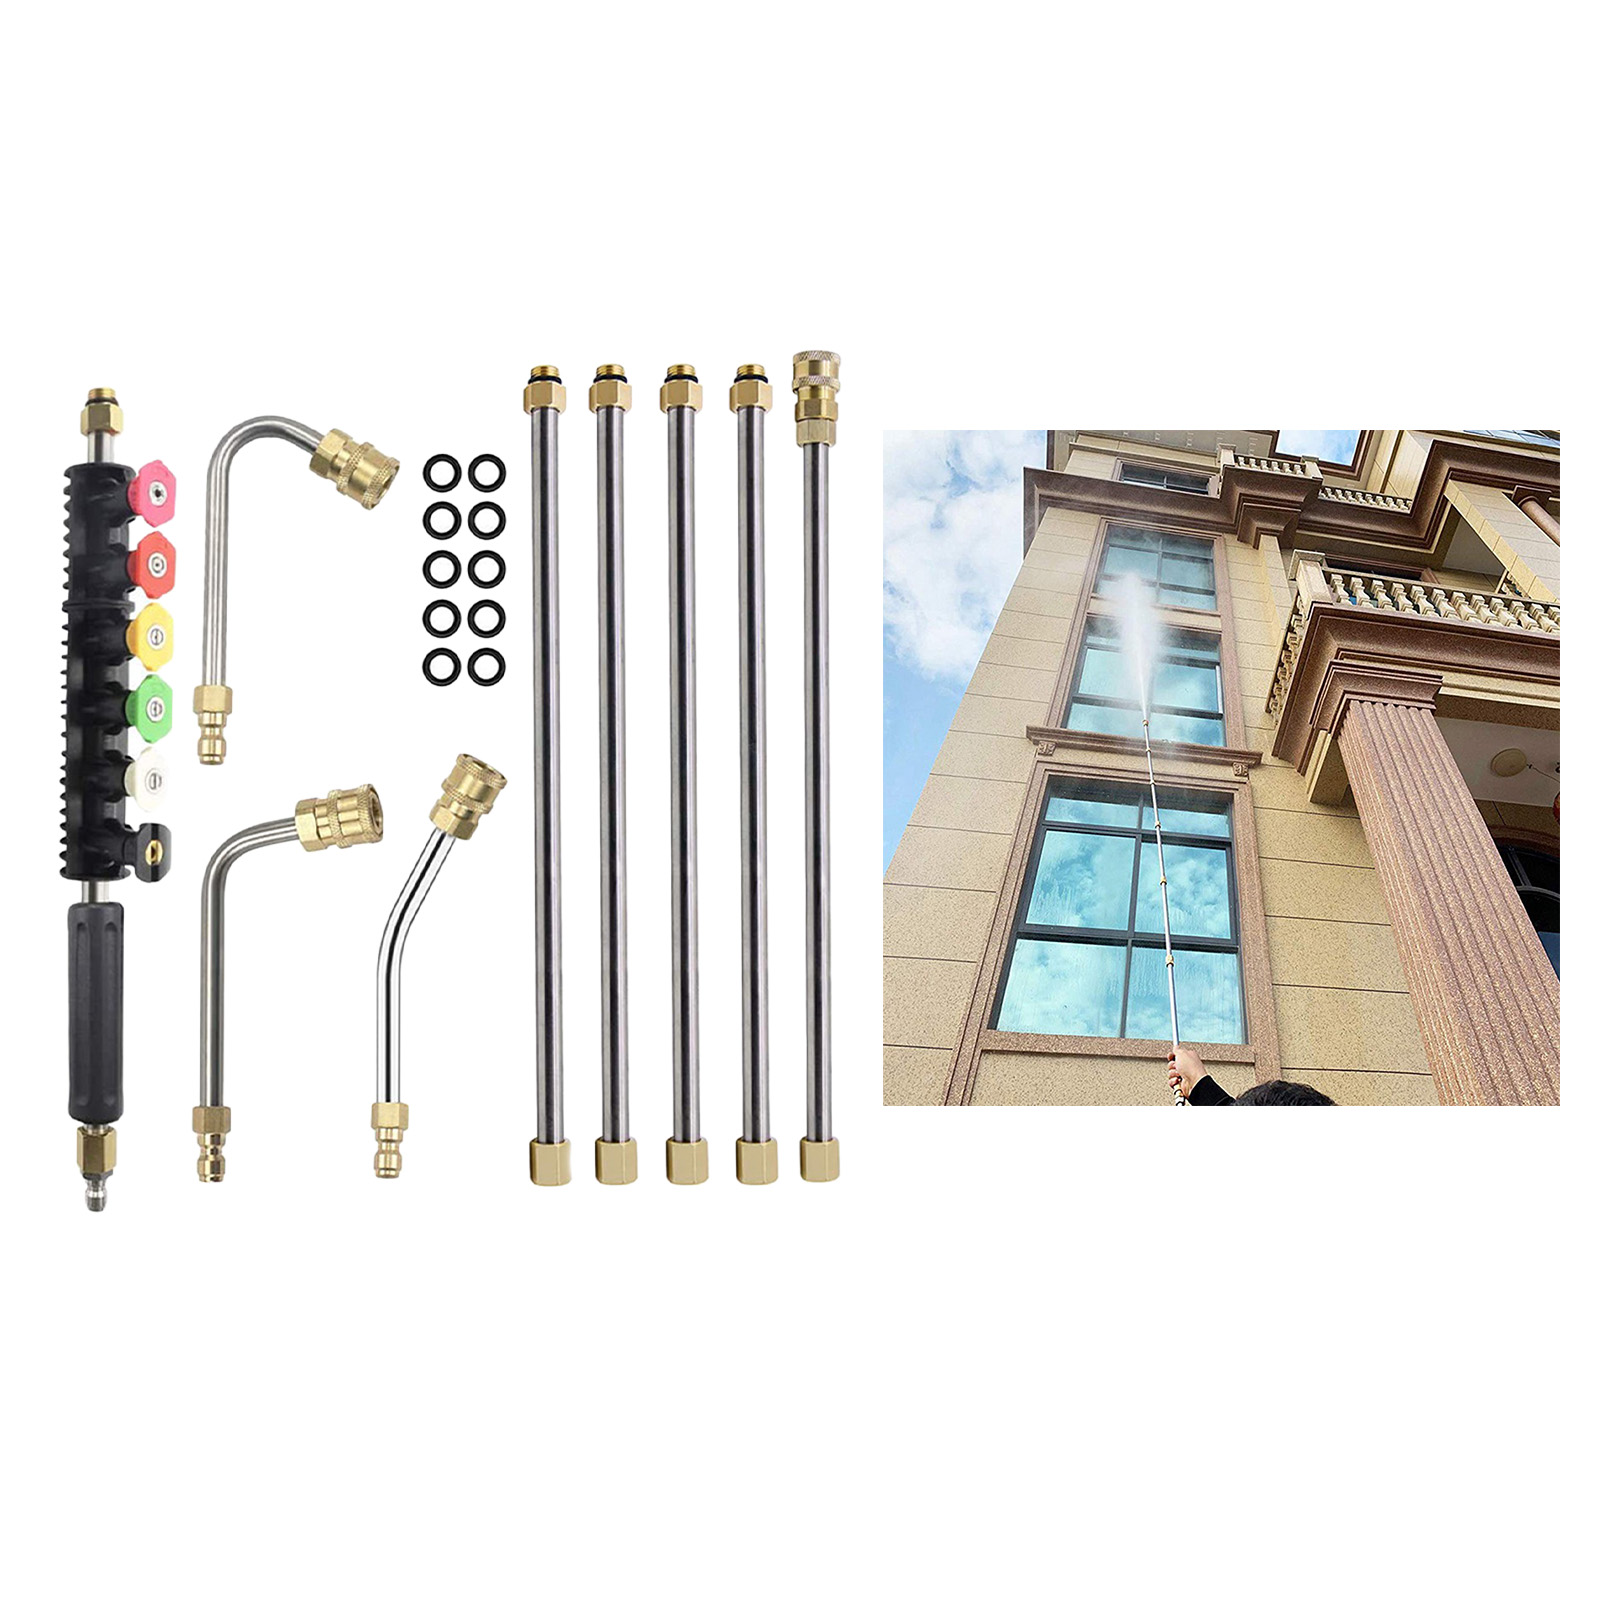 Pressure Washer Extension Wand with Spray Nozzle Tips 1/4